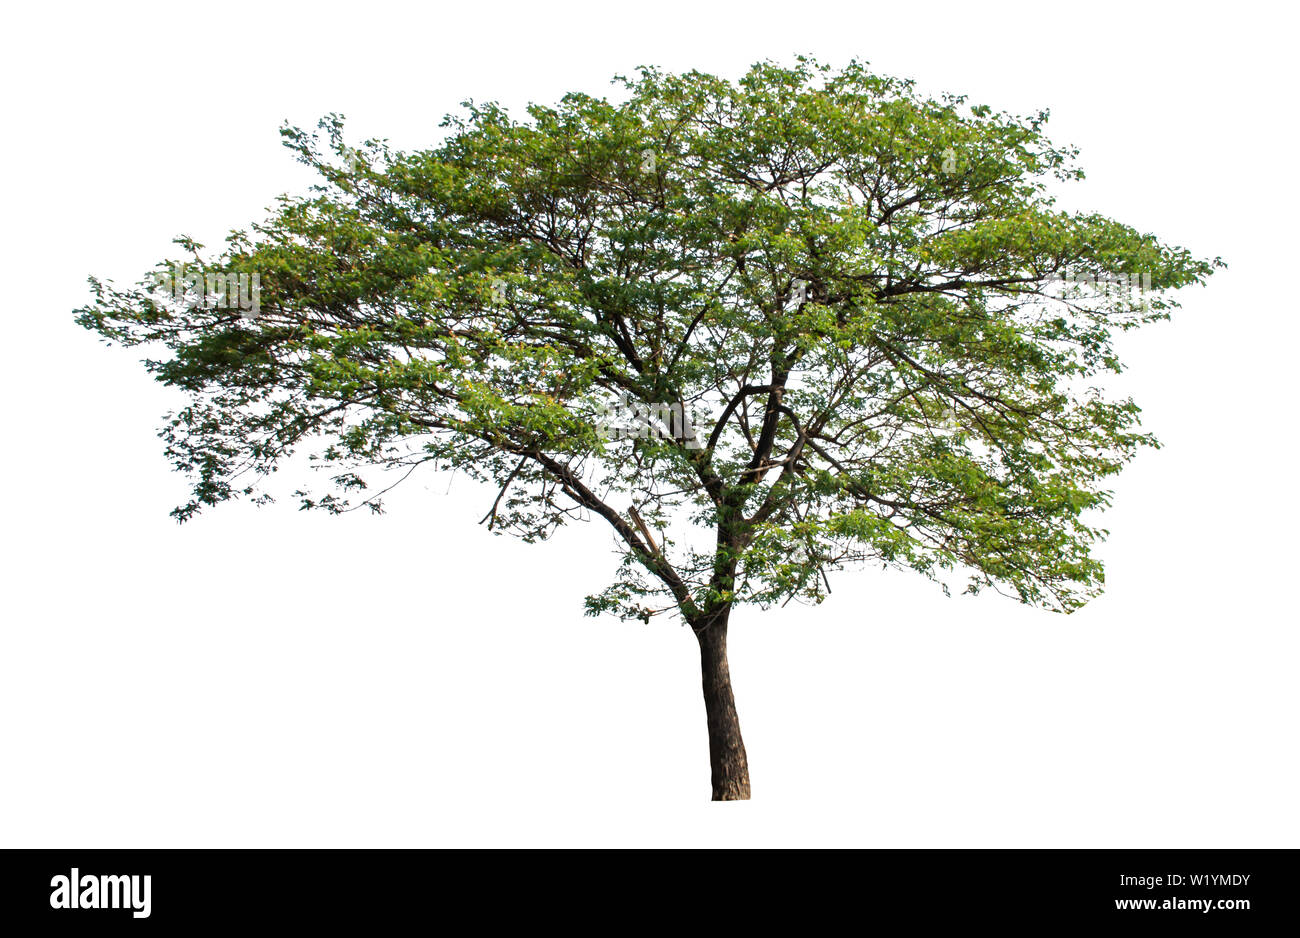 Isolated Bright green tree on a white background with clipping path.Isolated Bright green tree on a white background with clipping path. - Stock Image